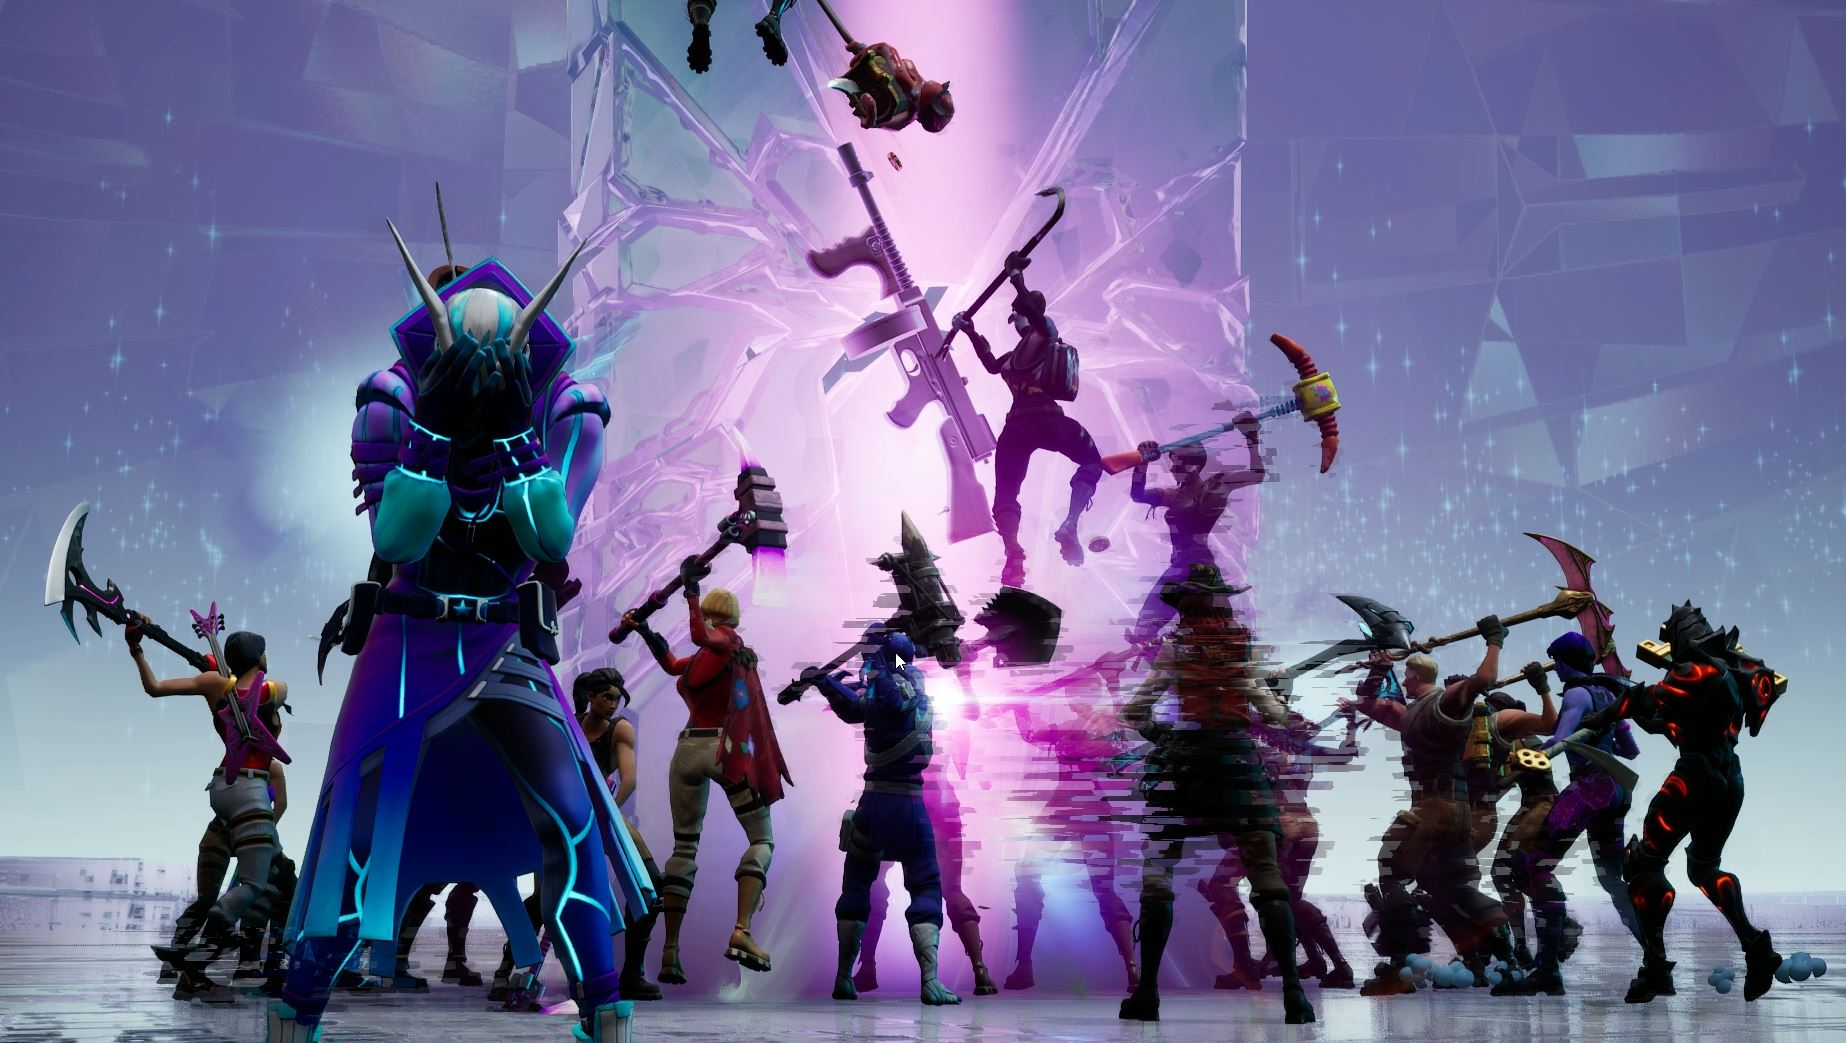 Epic gives away free Fortnite glider as apology for glitched Unvaulting event